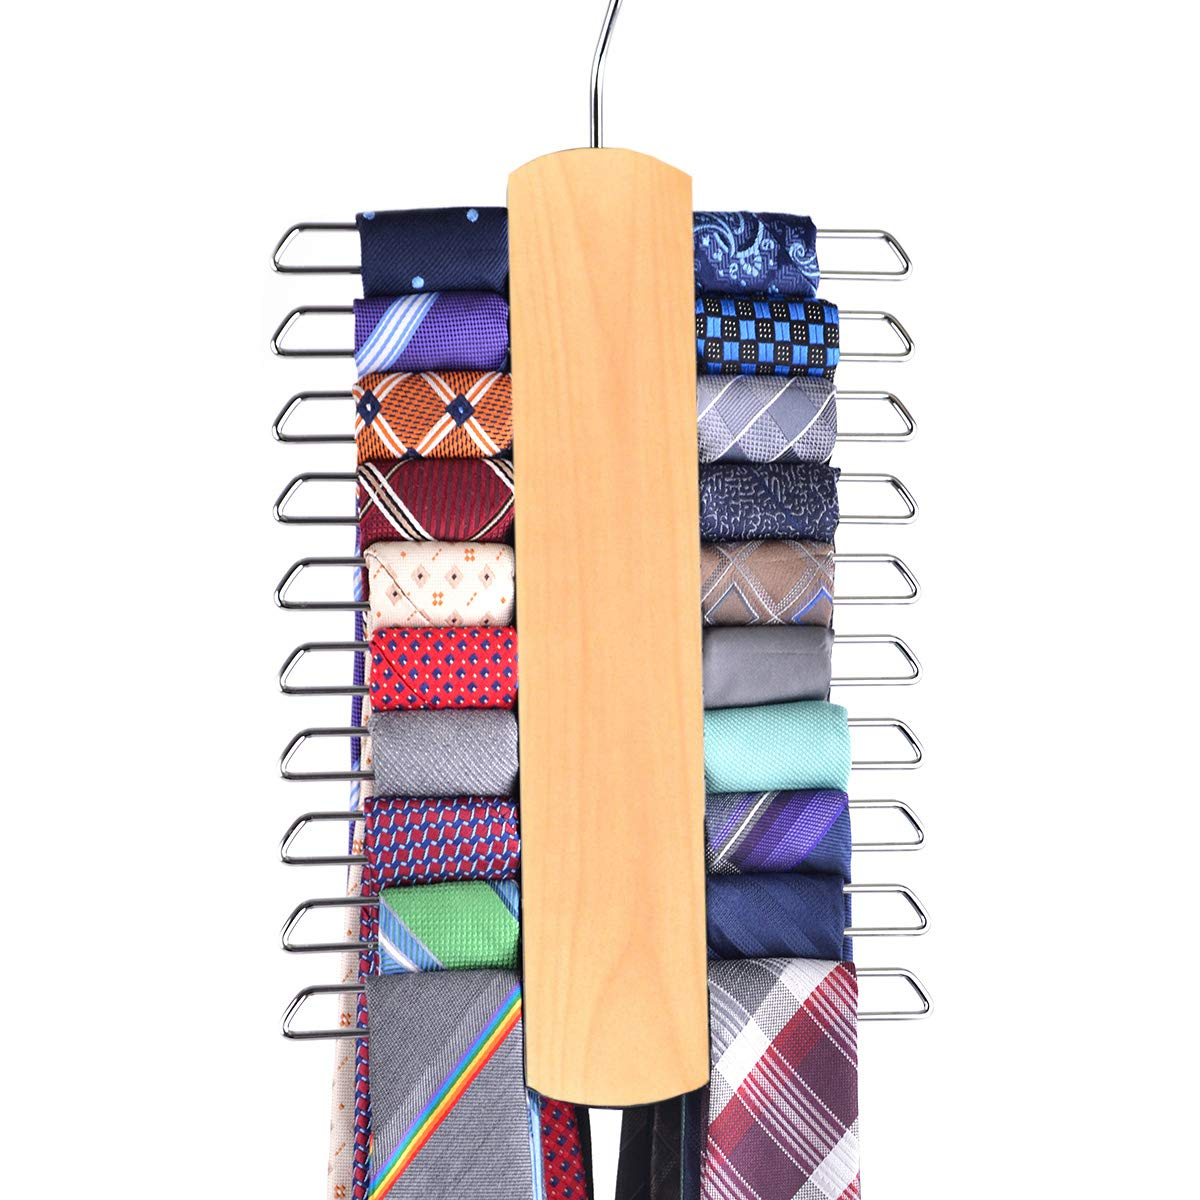 Umo Lorenzo Premium Wooden Necktie and Belt Hanger, Walnut Wood Center Organizer and Storage Rack with a Non-Slip Finish - 20 Hooks (Light Wooden 2)